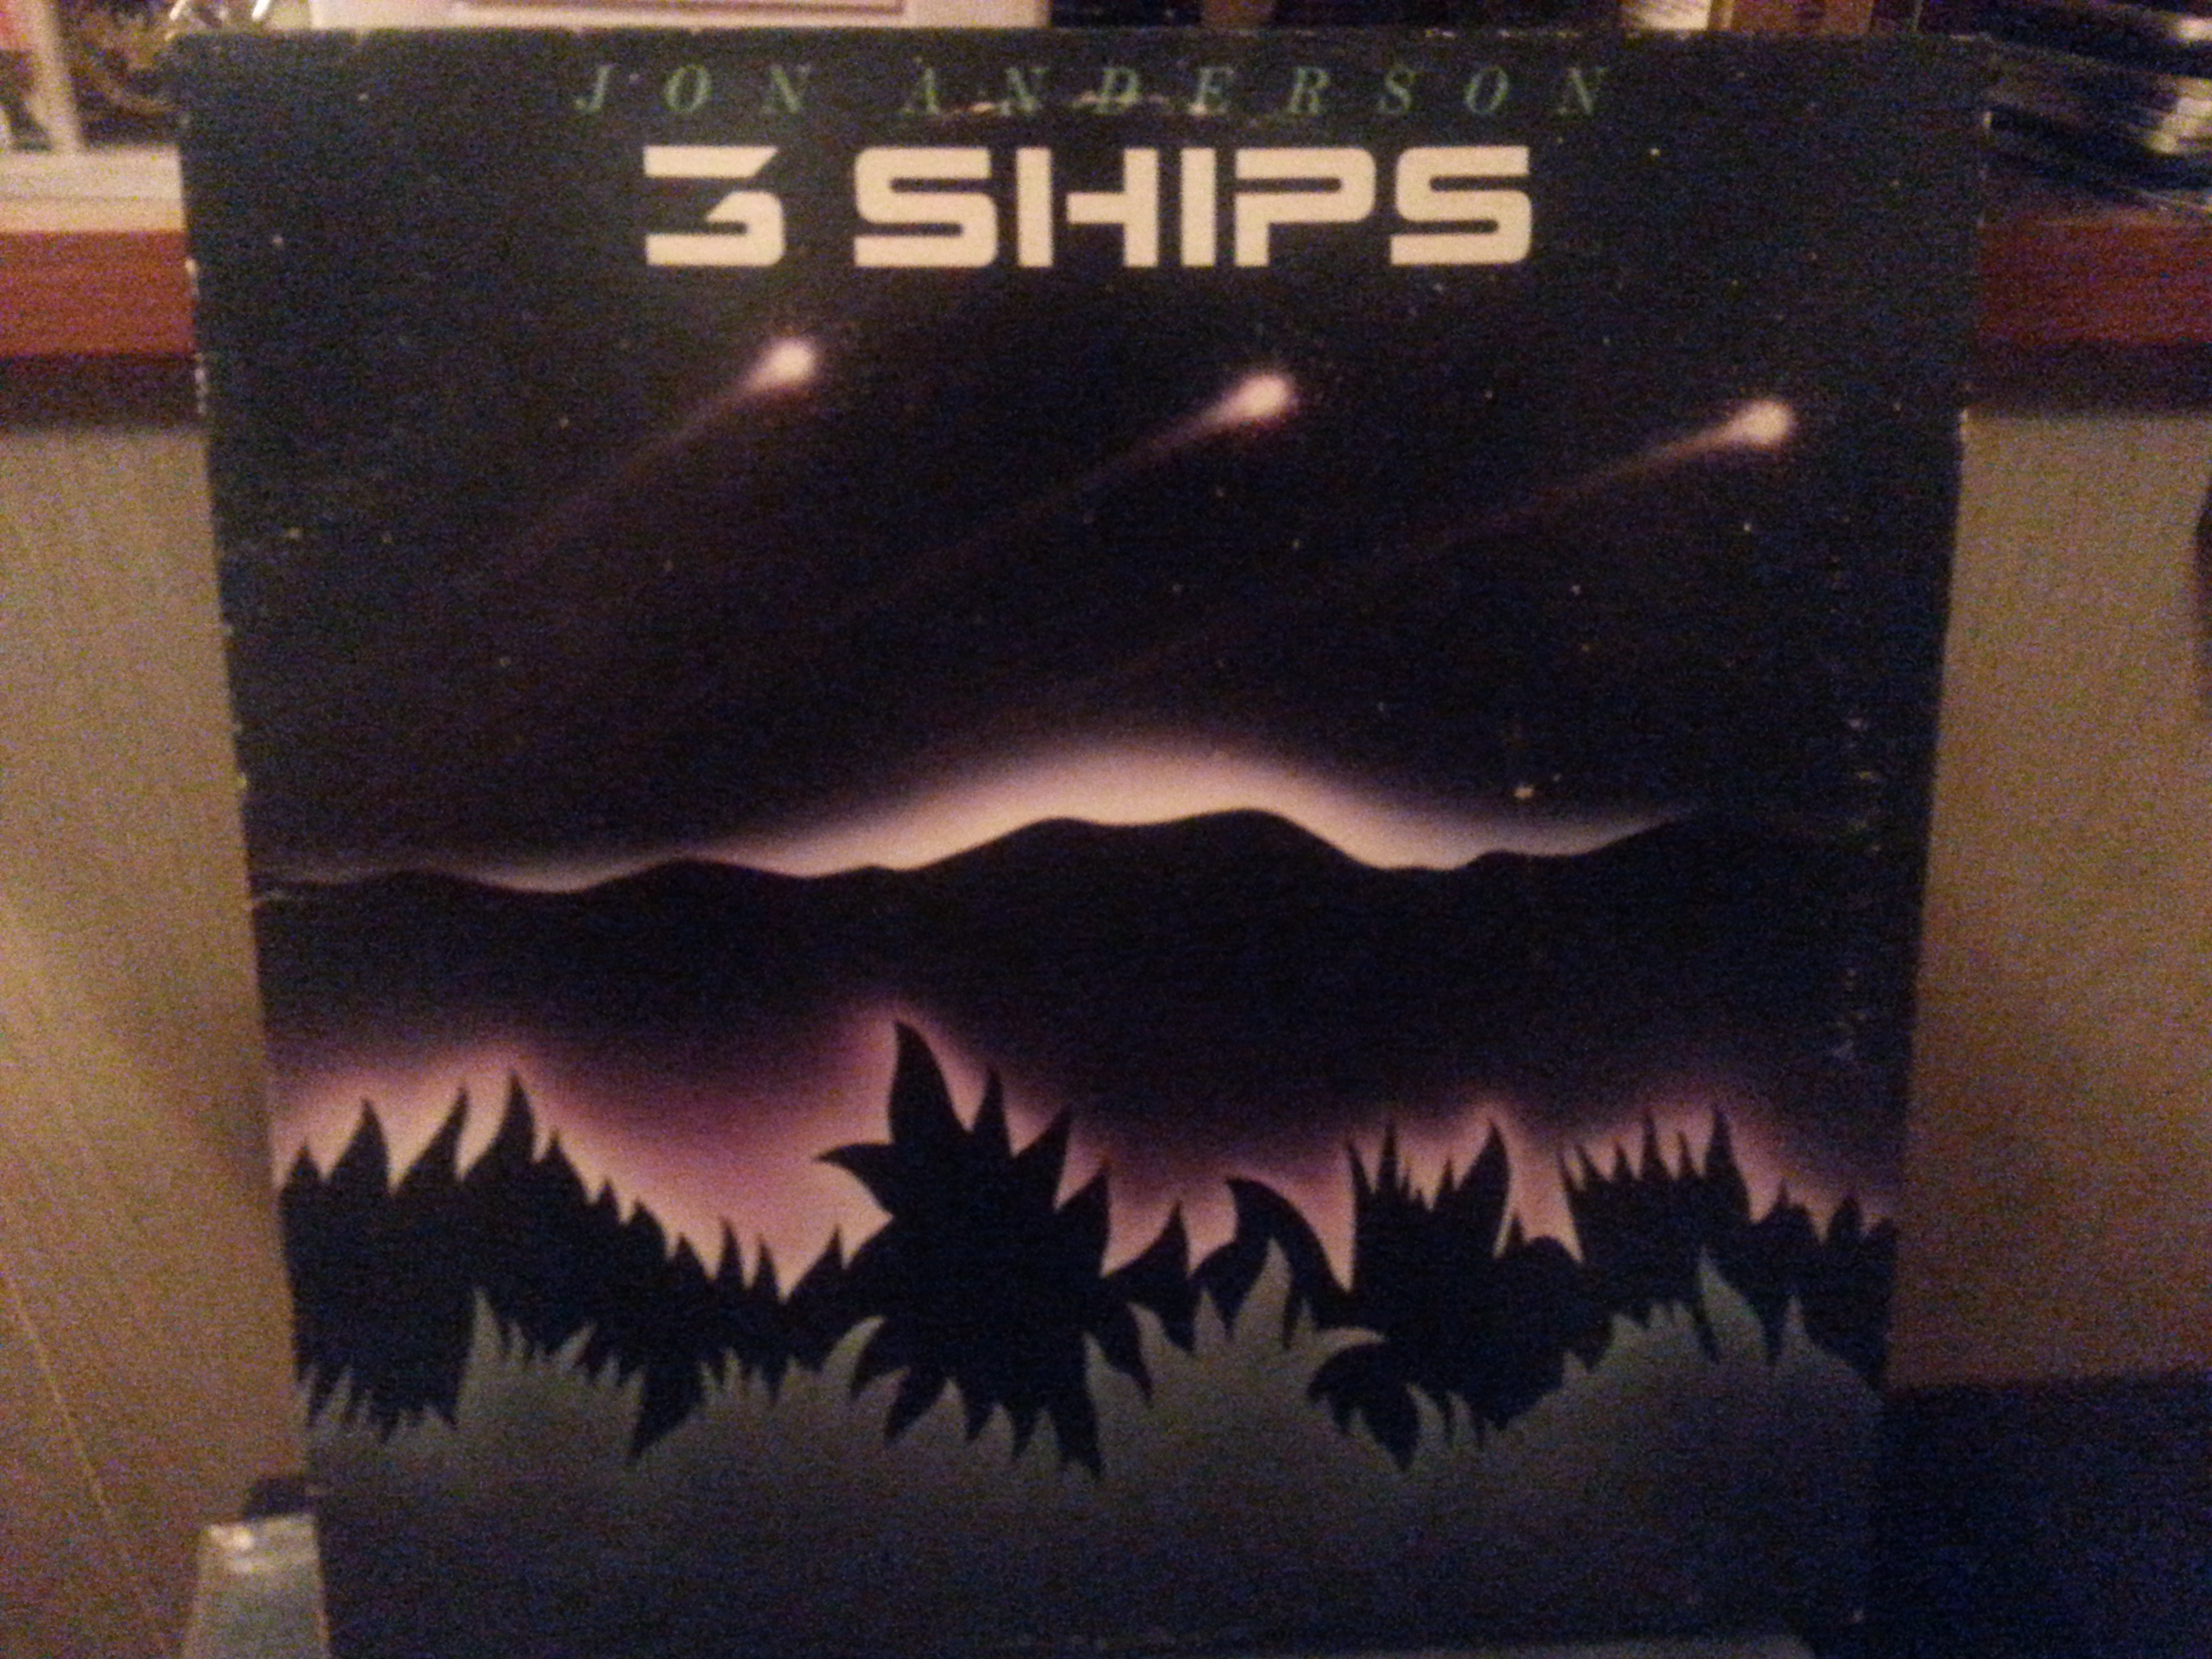 3 Ships by Jon Anderson